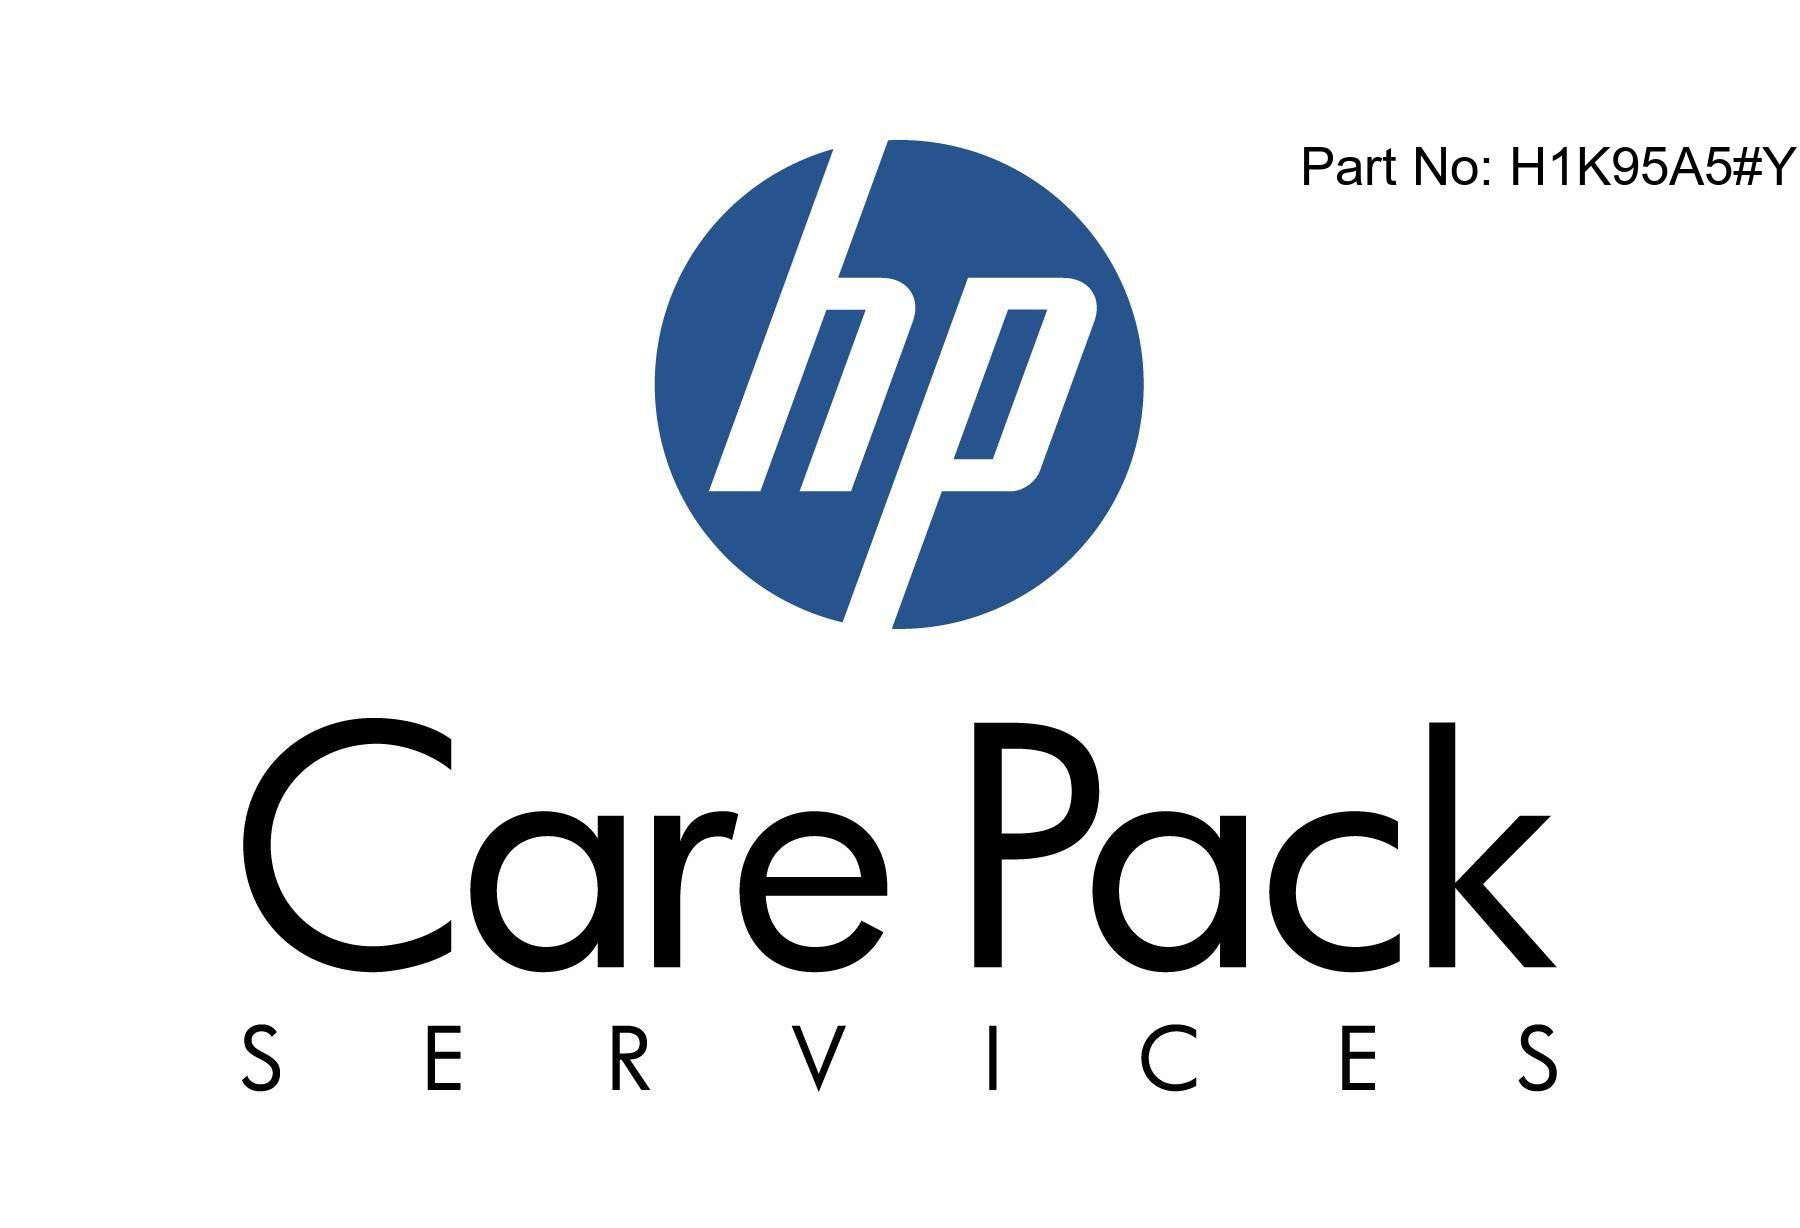 Proactive Care Call-To-Repair Service with Defective Media Retention - Extended service agreement - parts and labor - 5 years - on-site - 24x7 - repair time: 6 hours